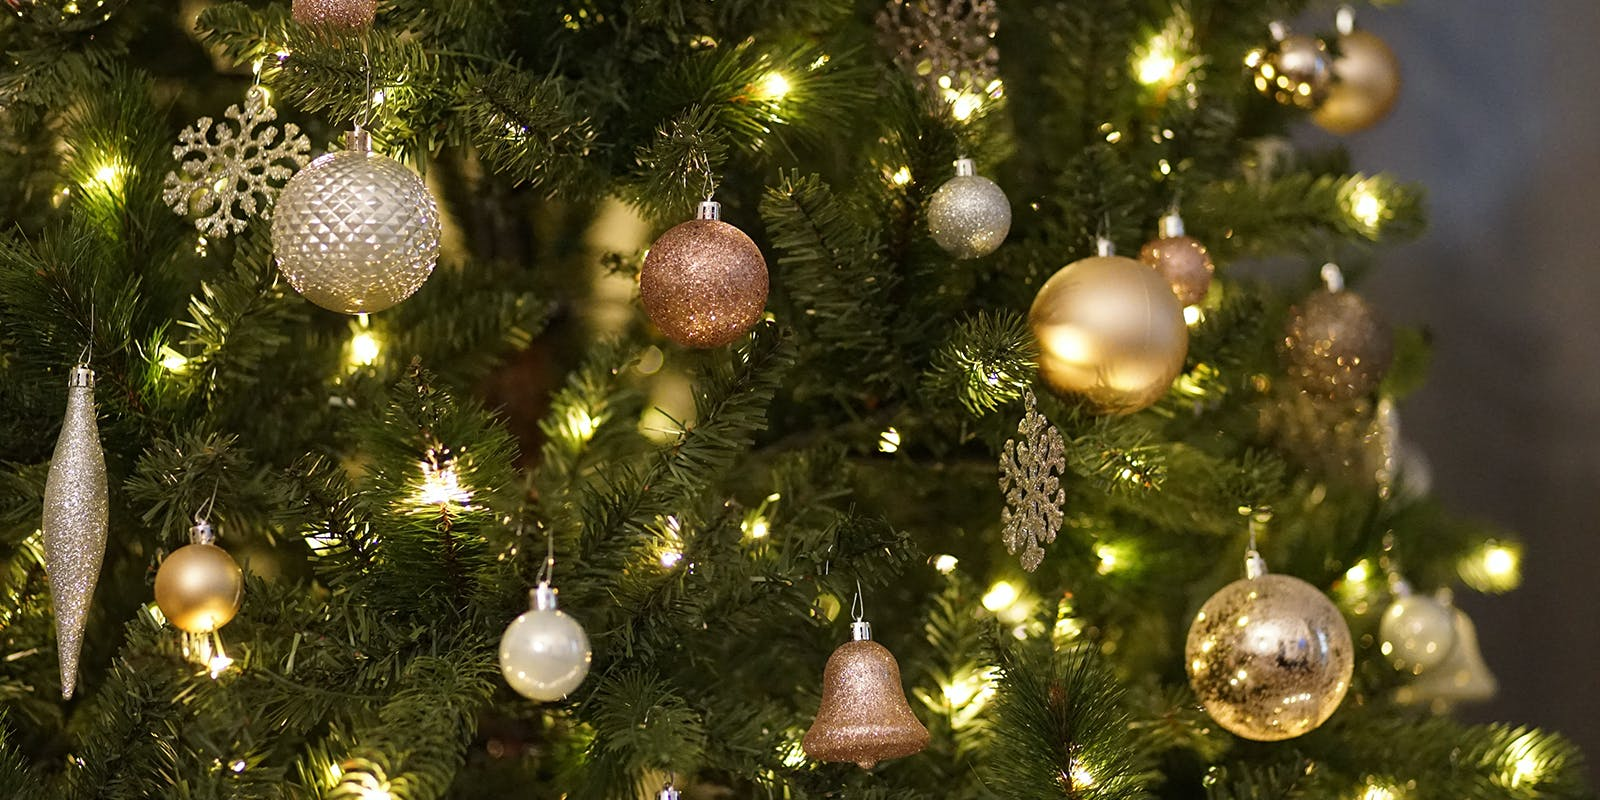 Sophie Gray's top tips for a cracker Christmas